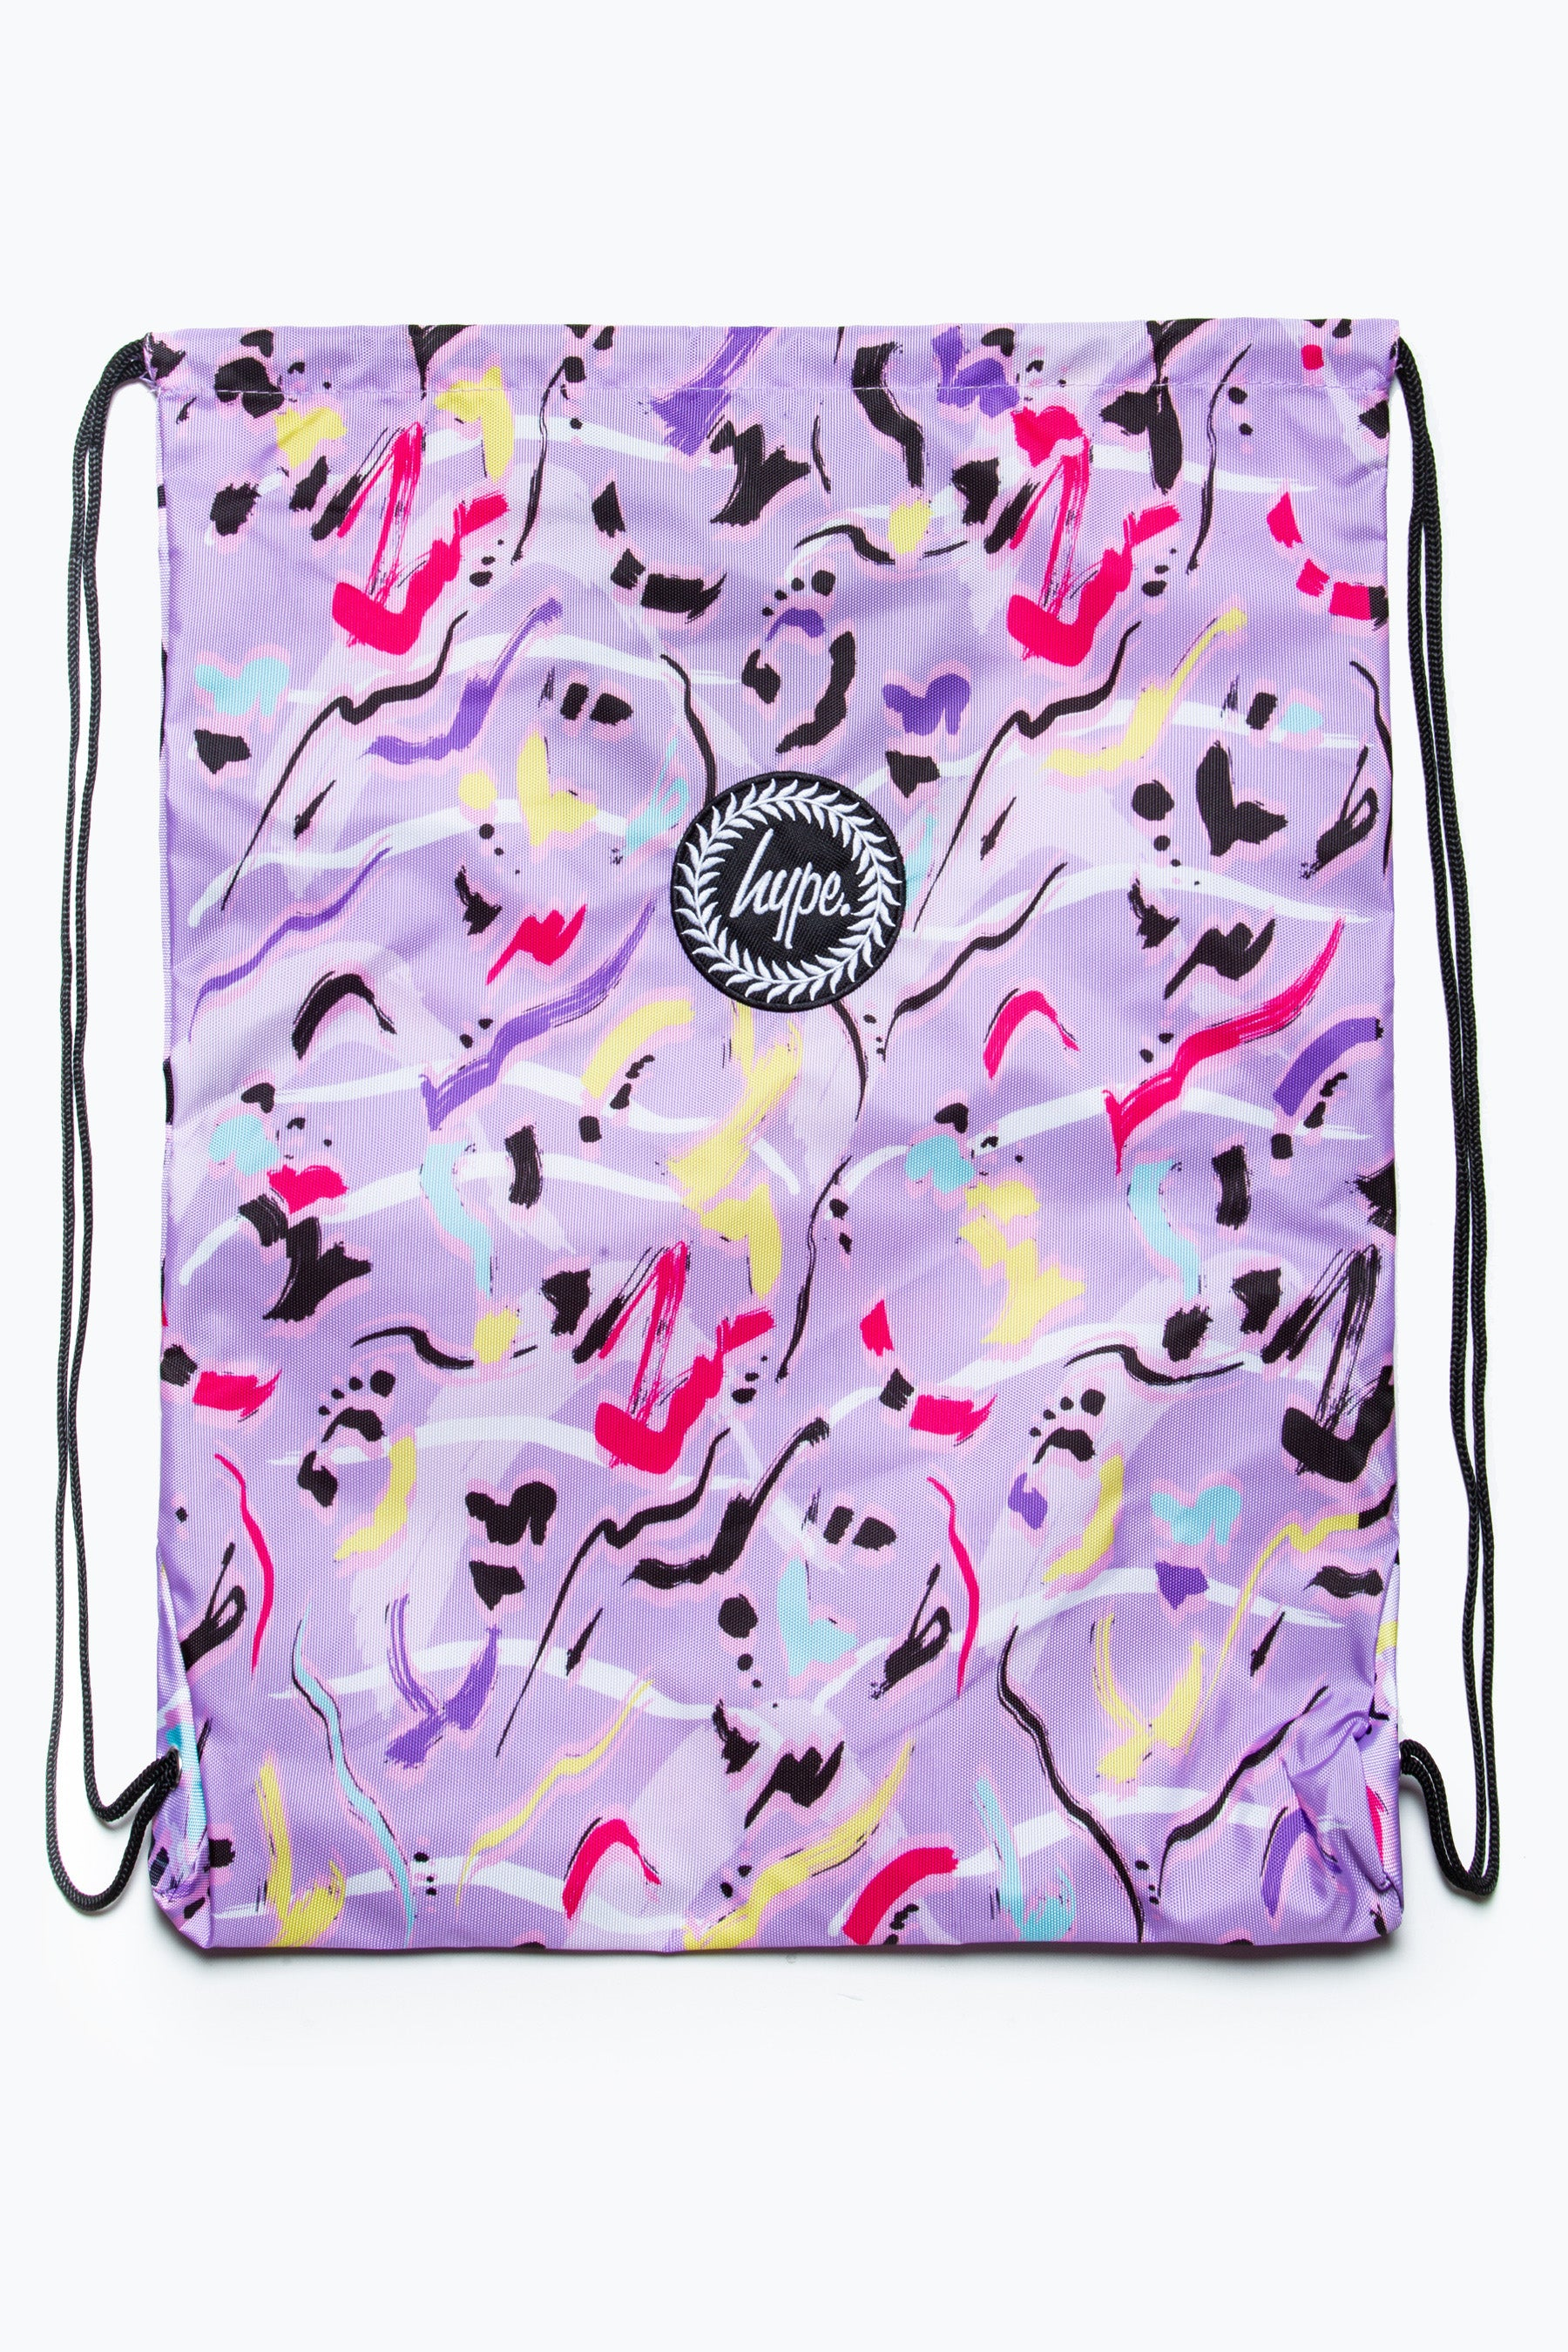 Clothing & Accessories HYPE ABSTRACT ANIMAL DRAWSTRING BAG